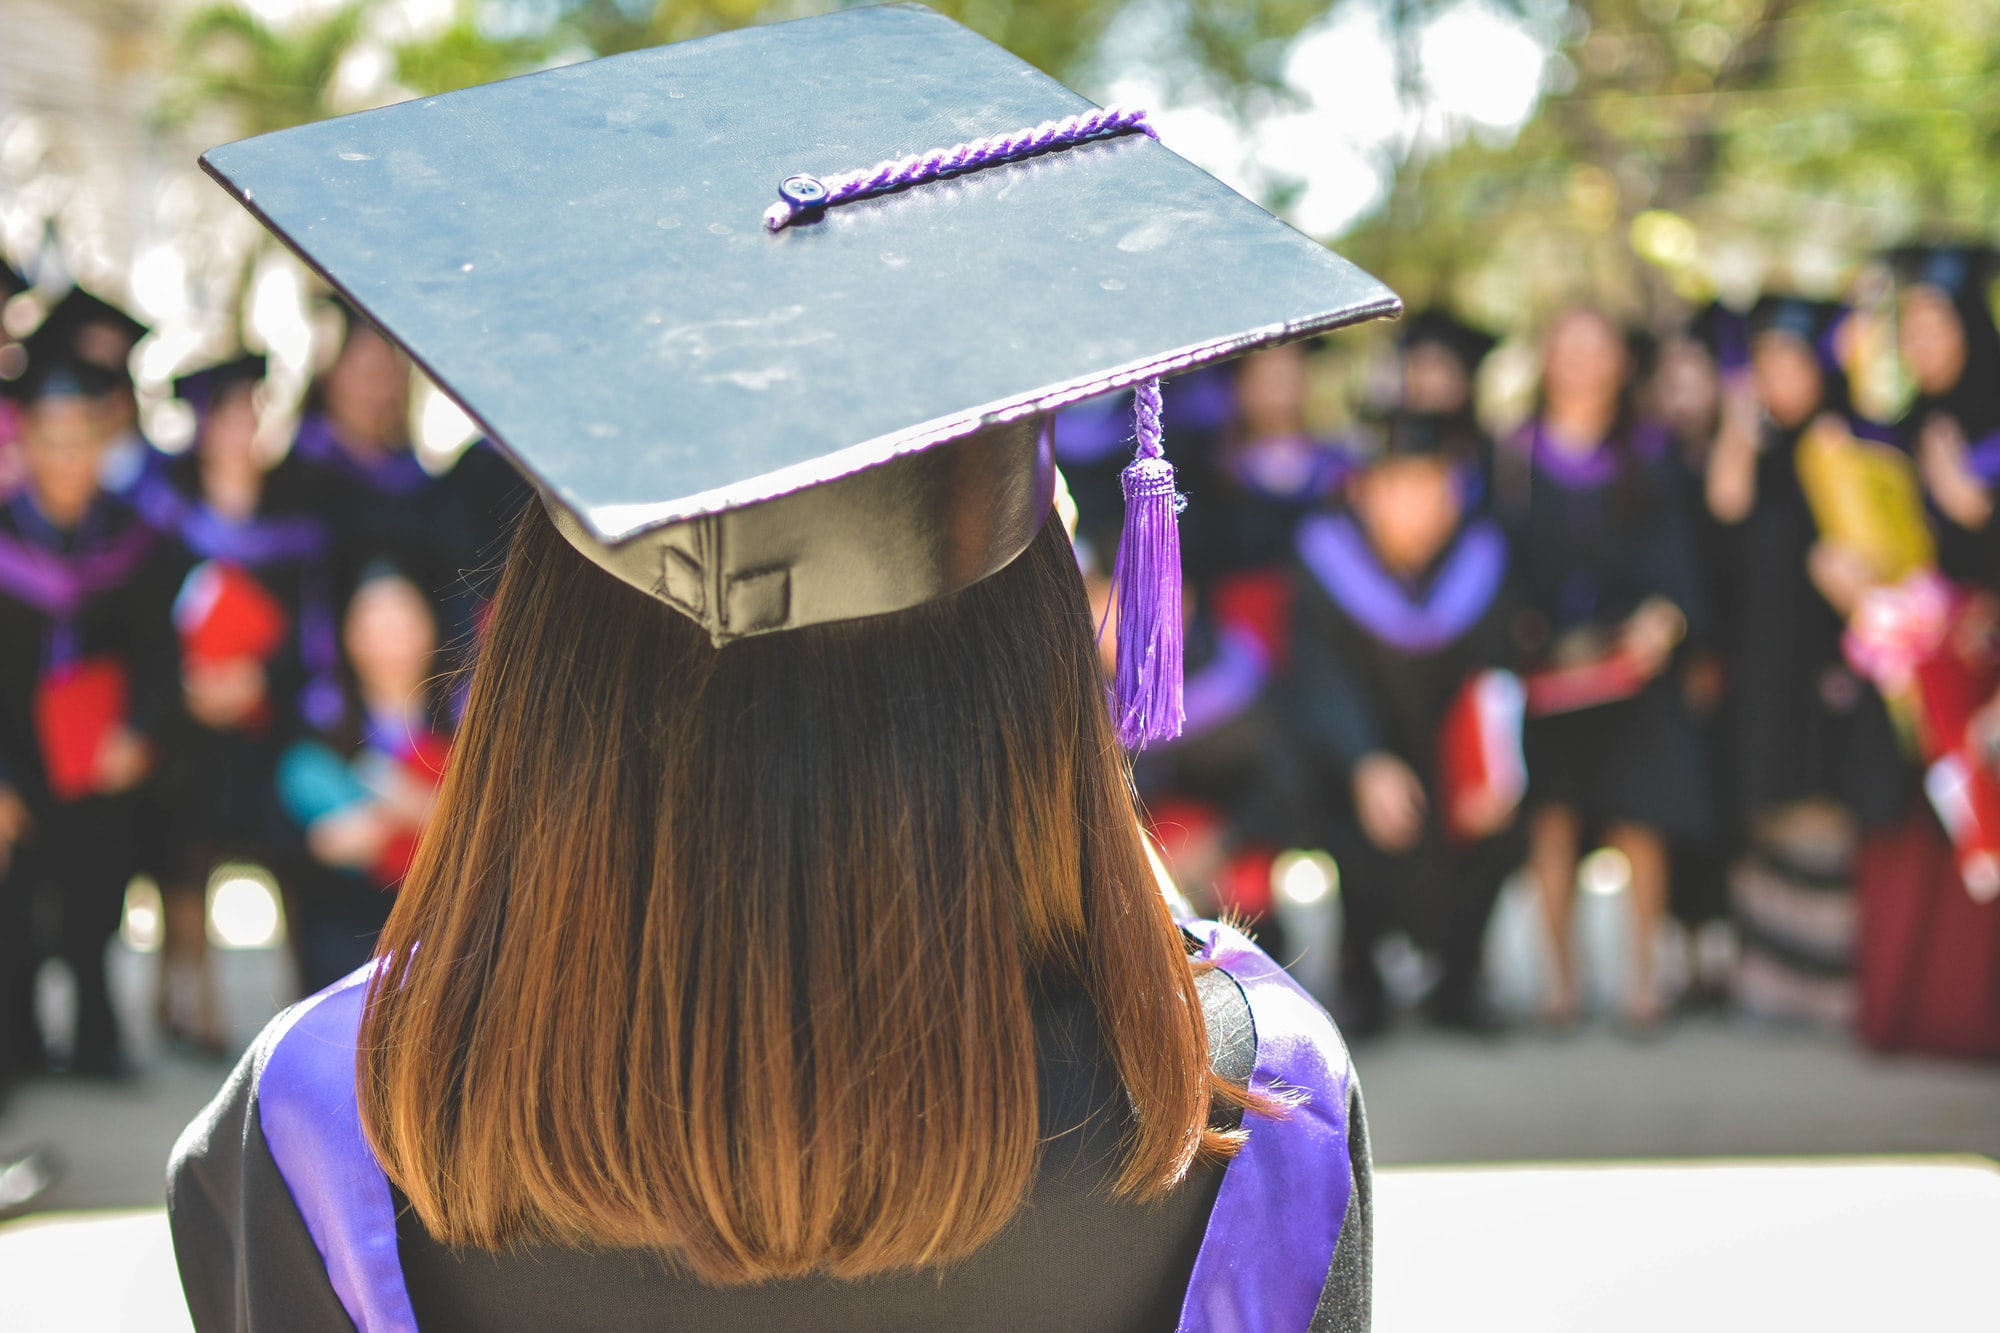 Higher Education in the Pandemic Era